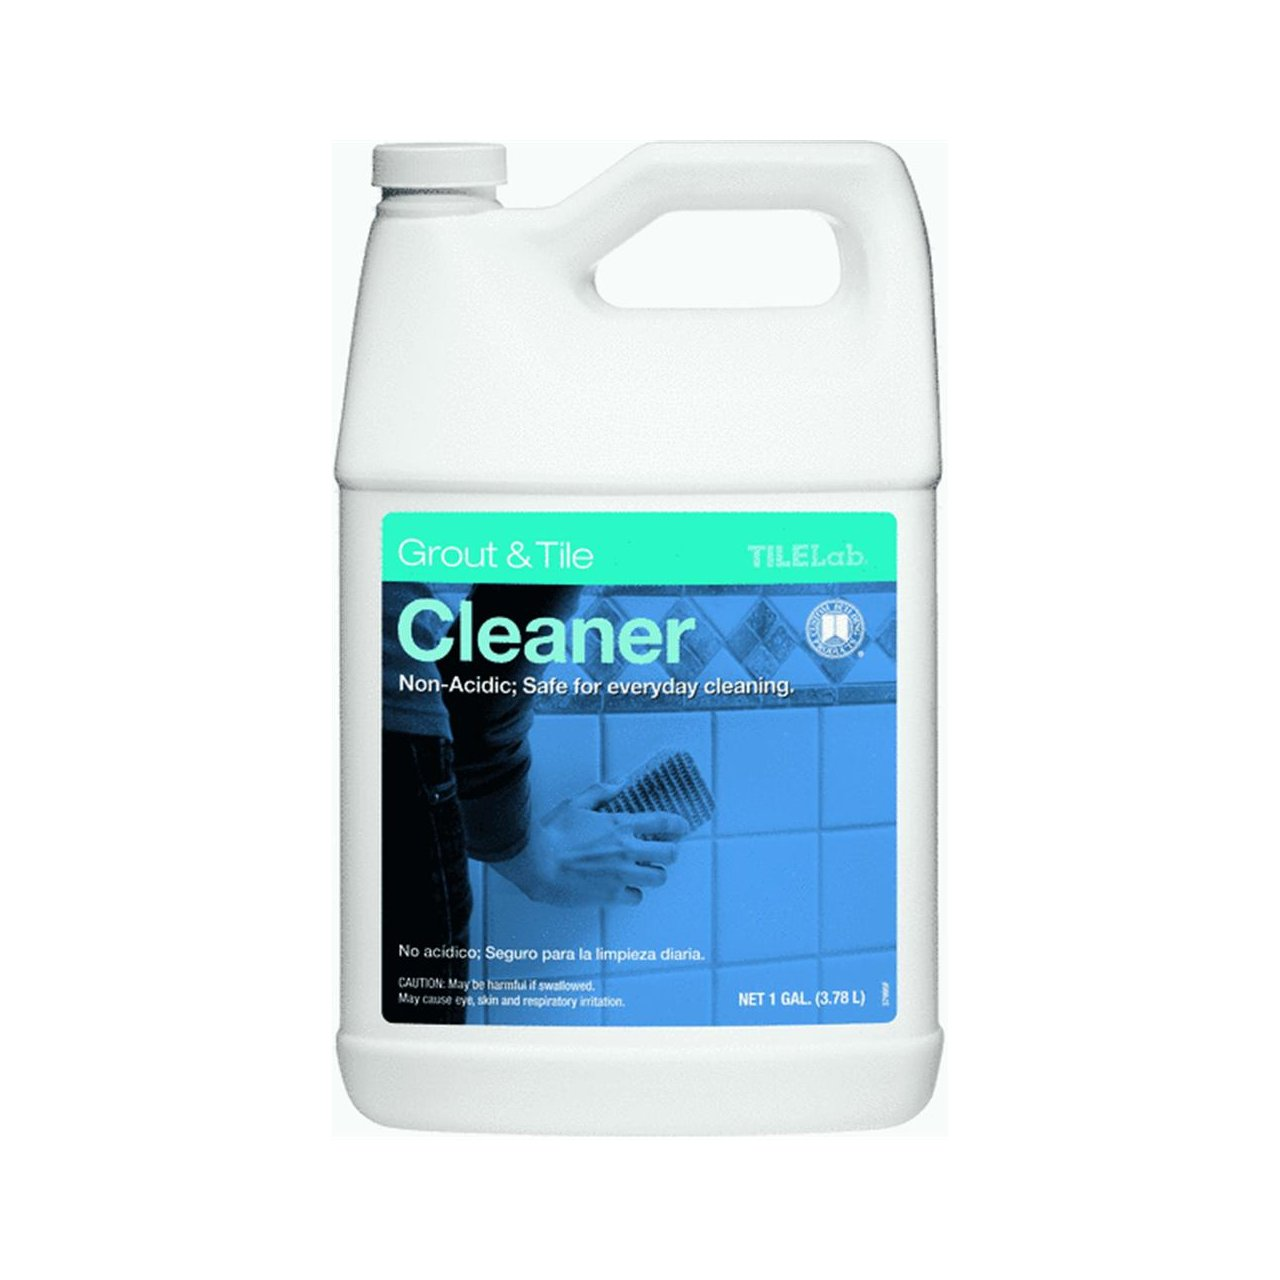 Tilelab Grout And Tile Cleaner, 1 Gallon - Tile Lab Tile And Grout ...